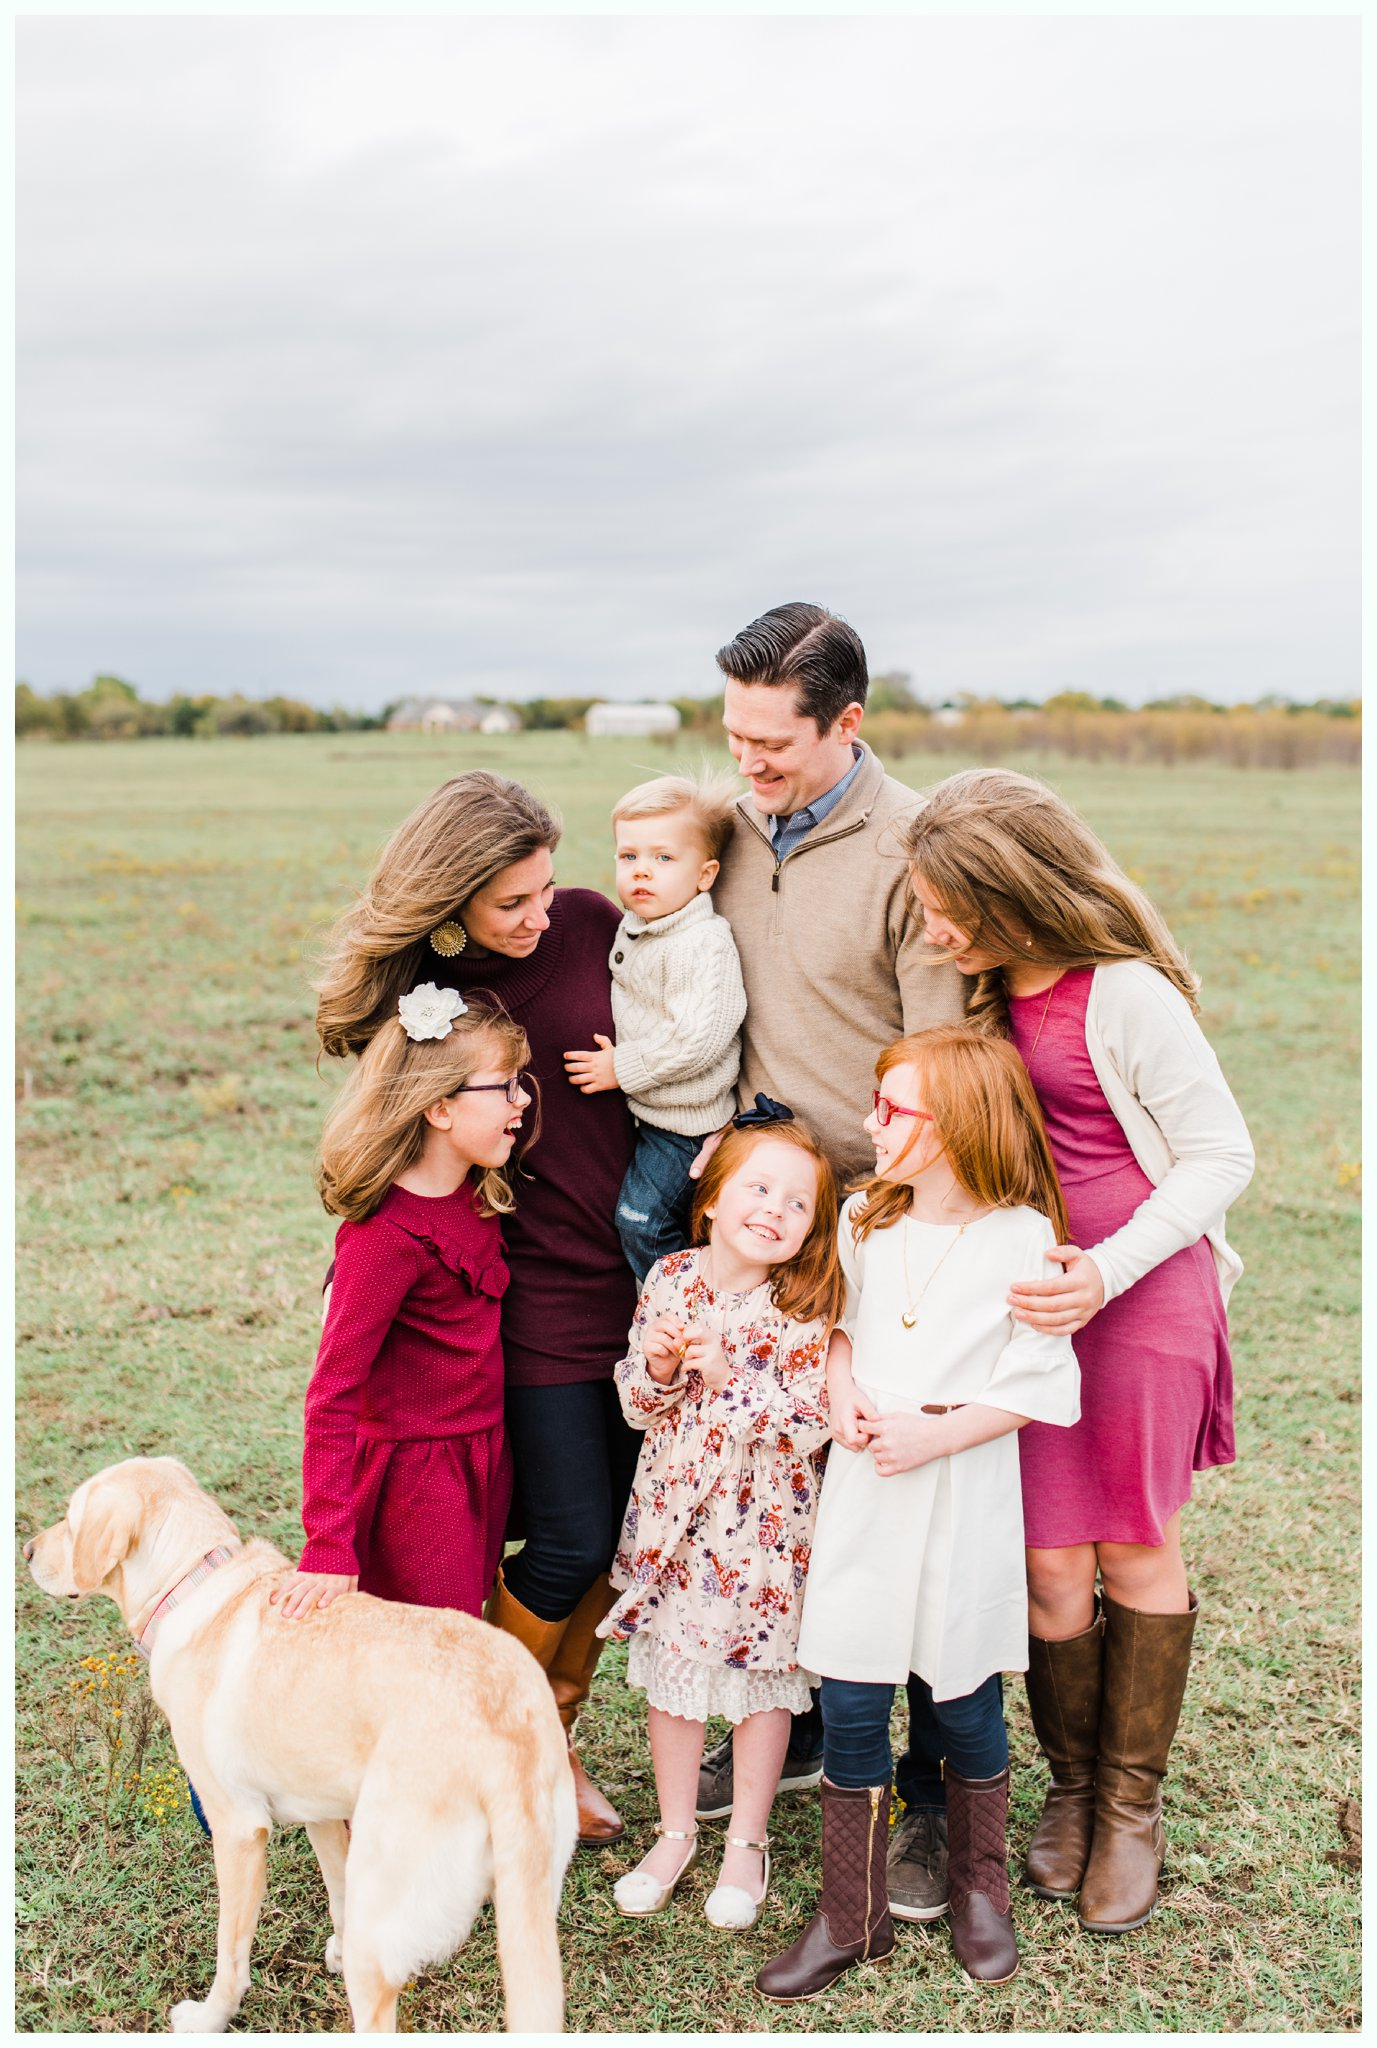 SHERMANFAMILYSESSION_3215.jpg